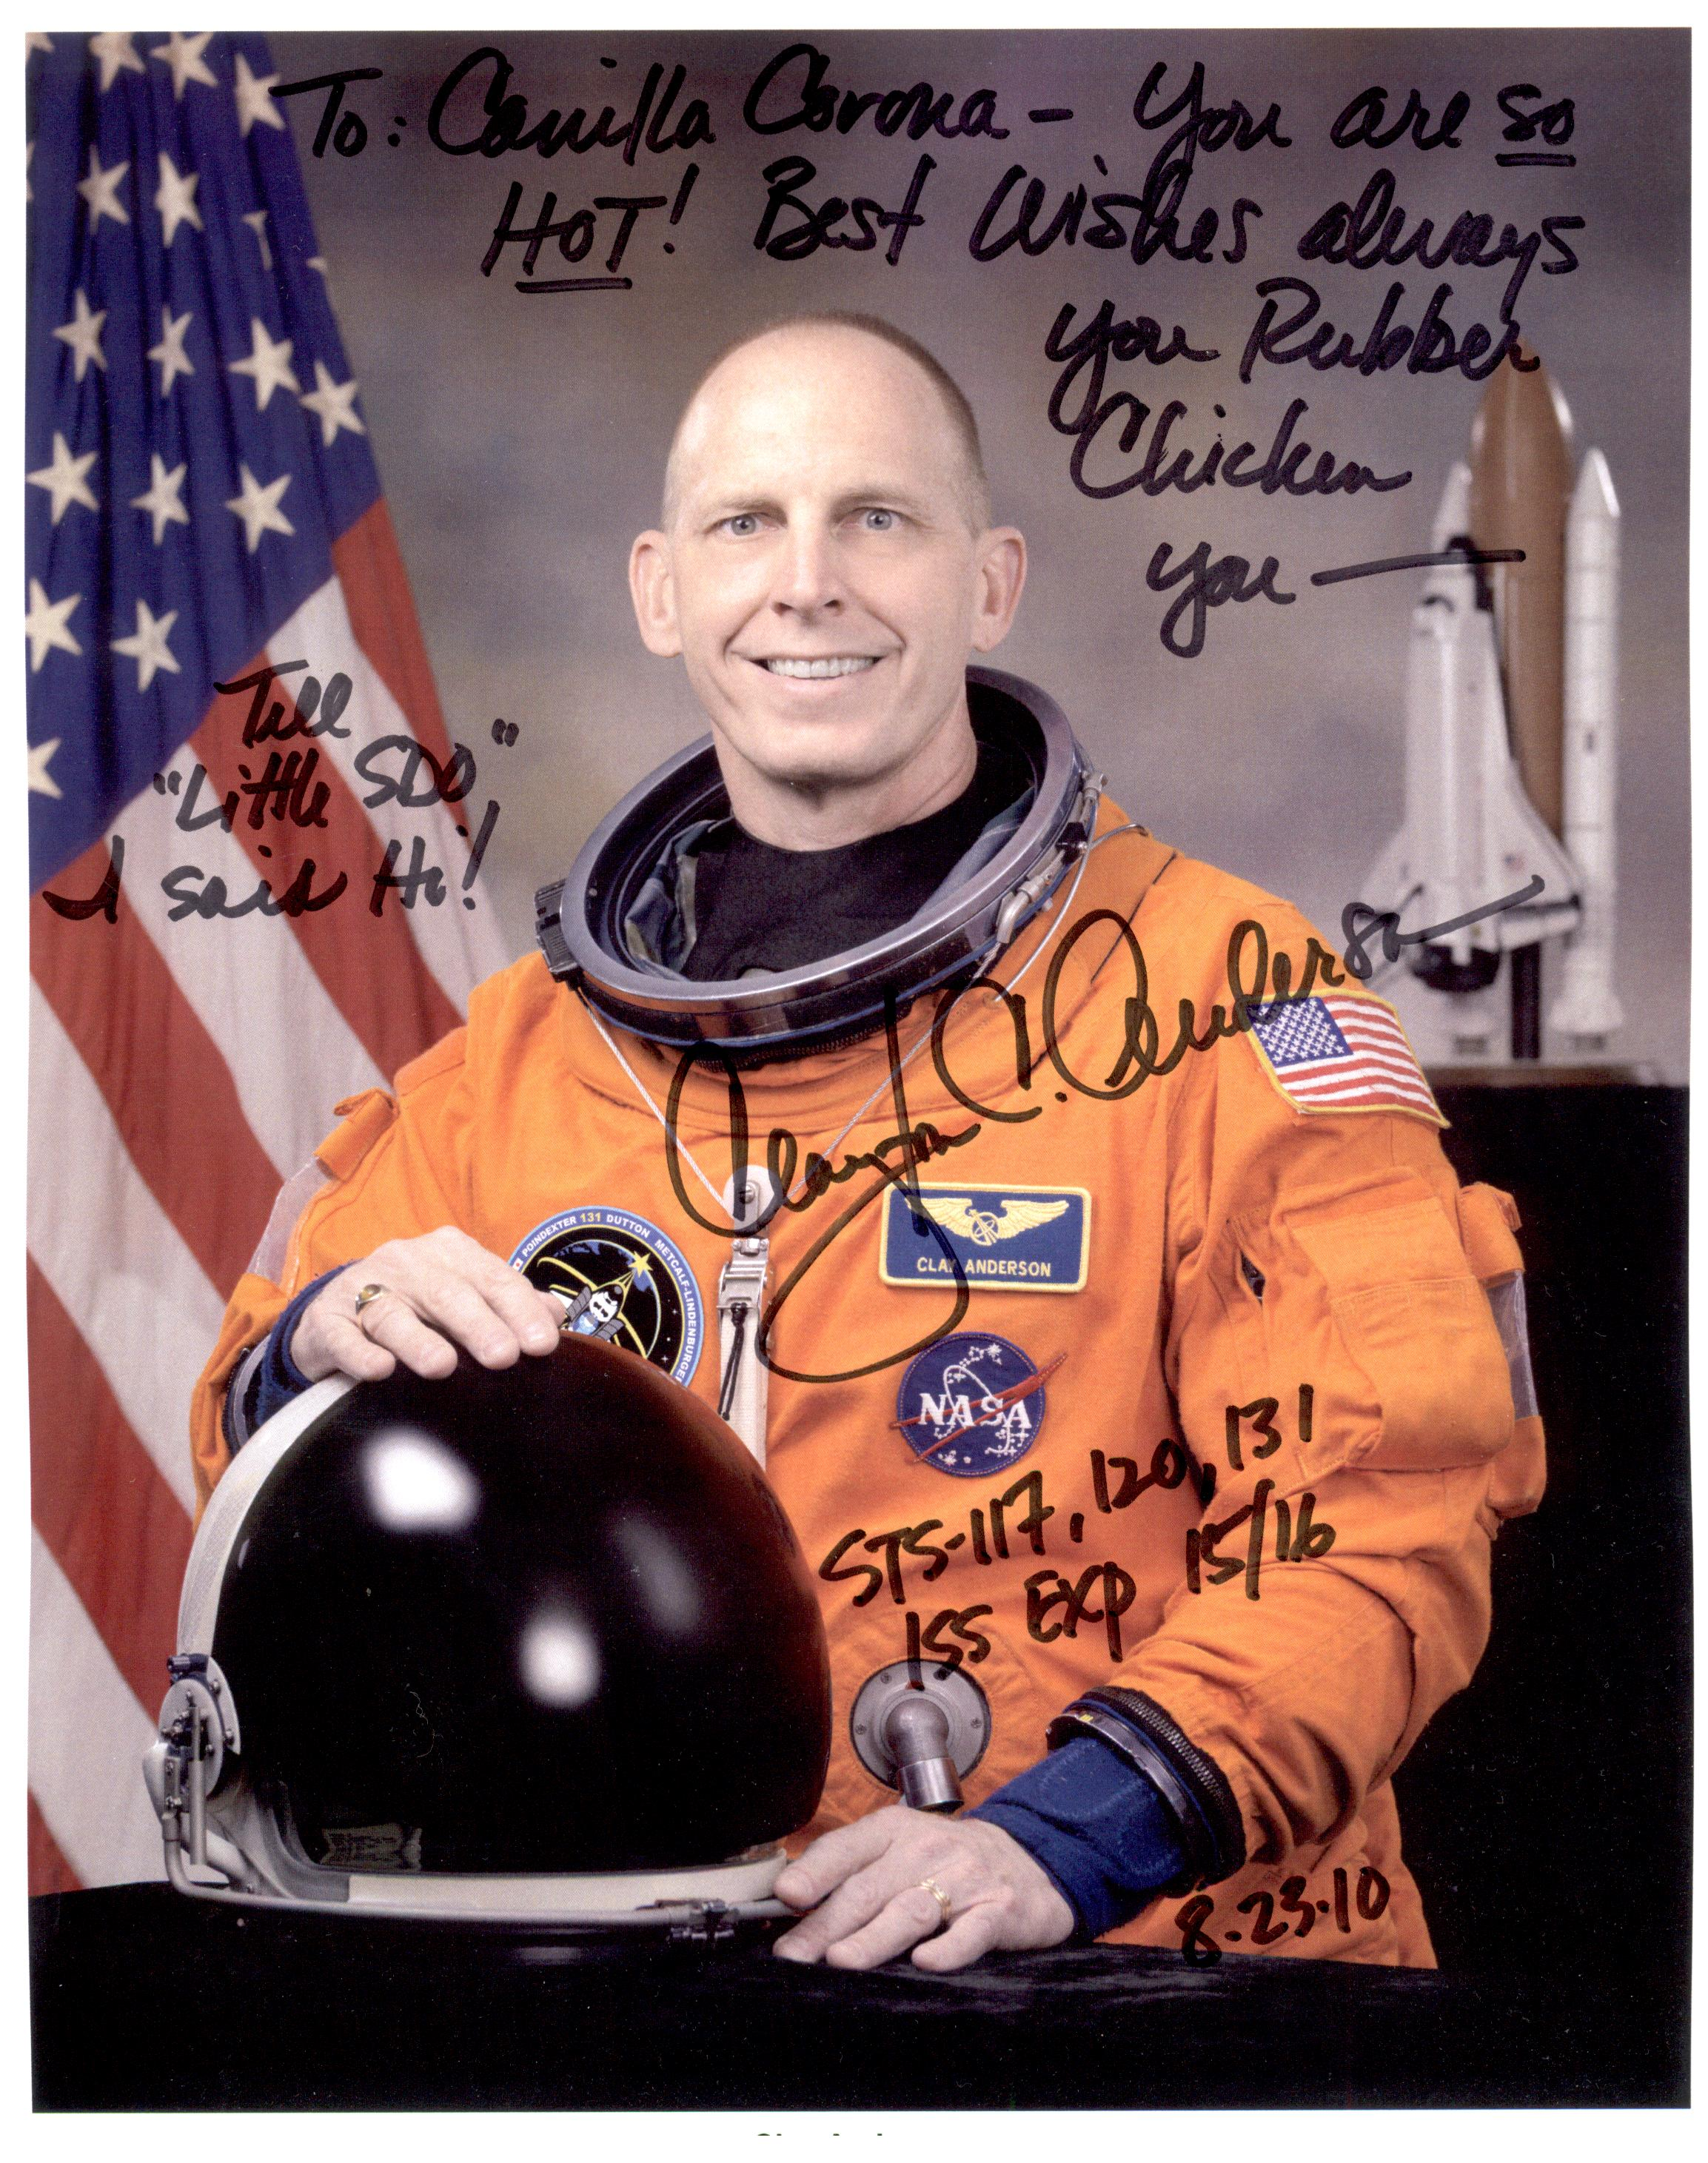 Astro_Clay_Signed_Picture.jpg